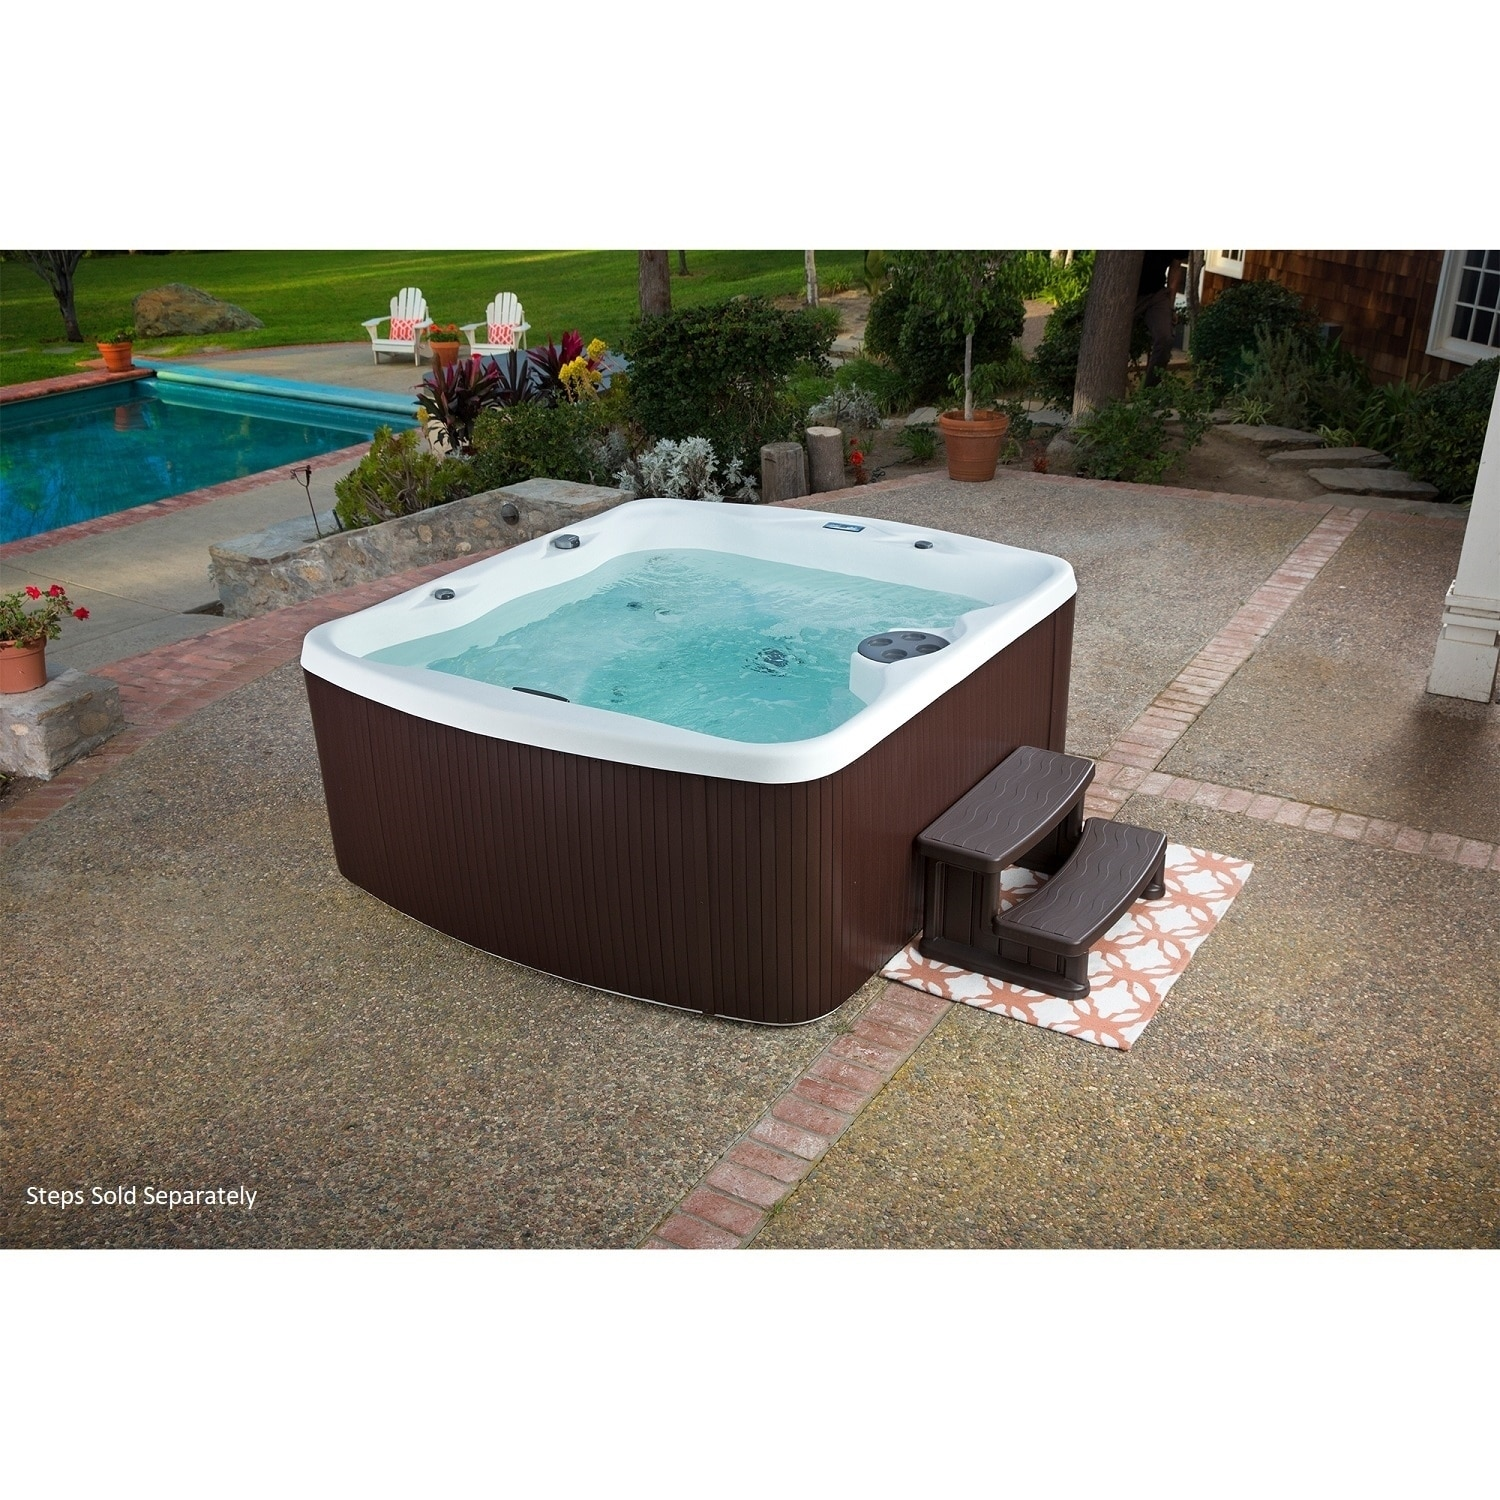 LifeSmart Spas Lfiesmart LS550 Plus 5-person 45-jet Spa, ...